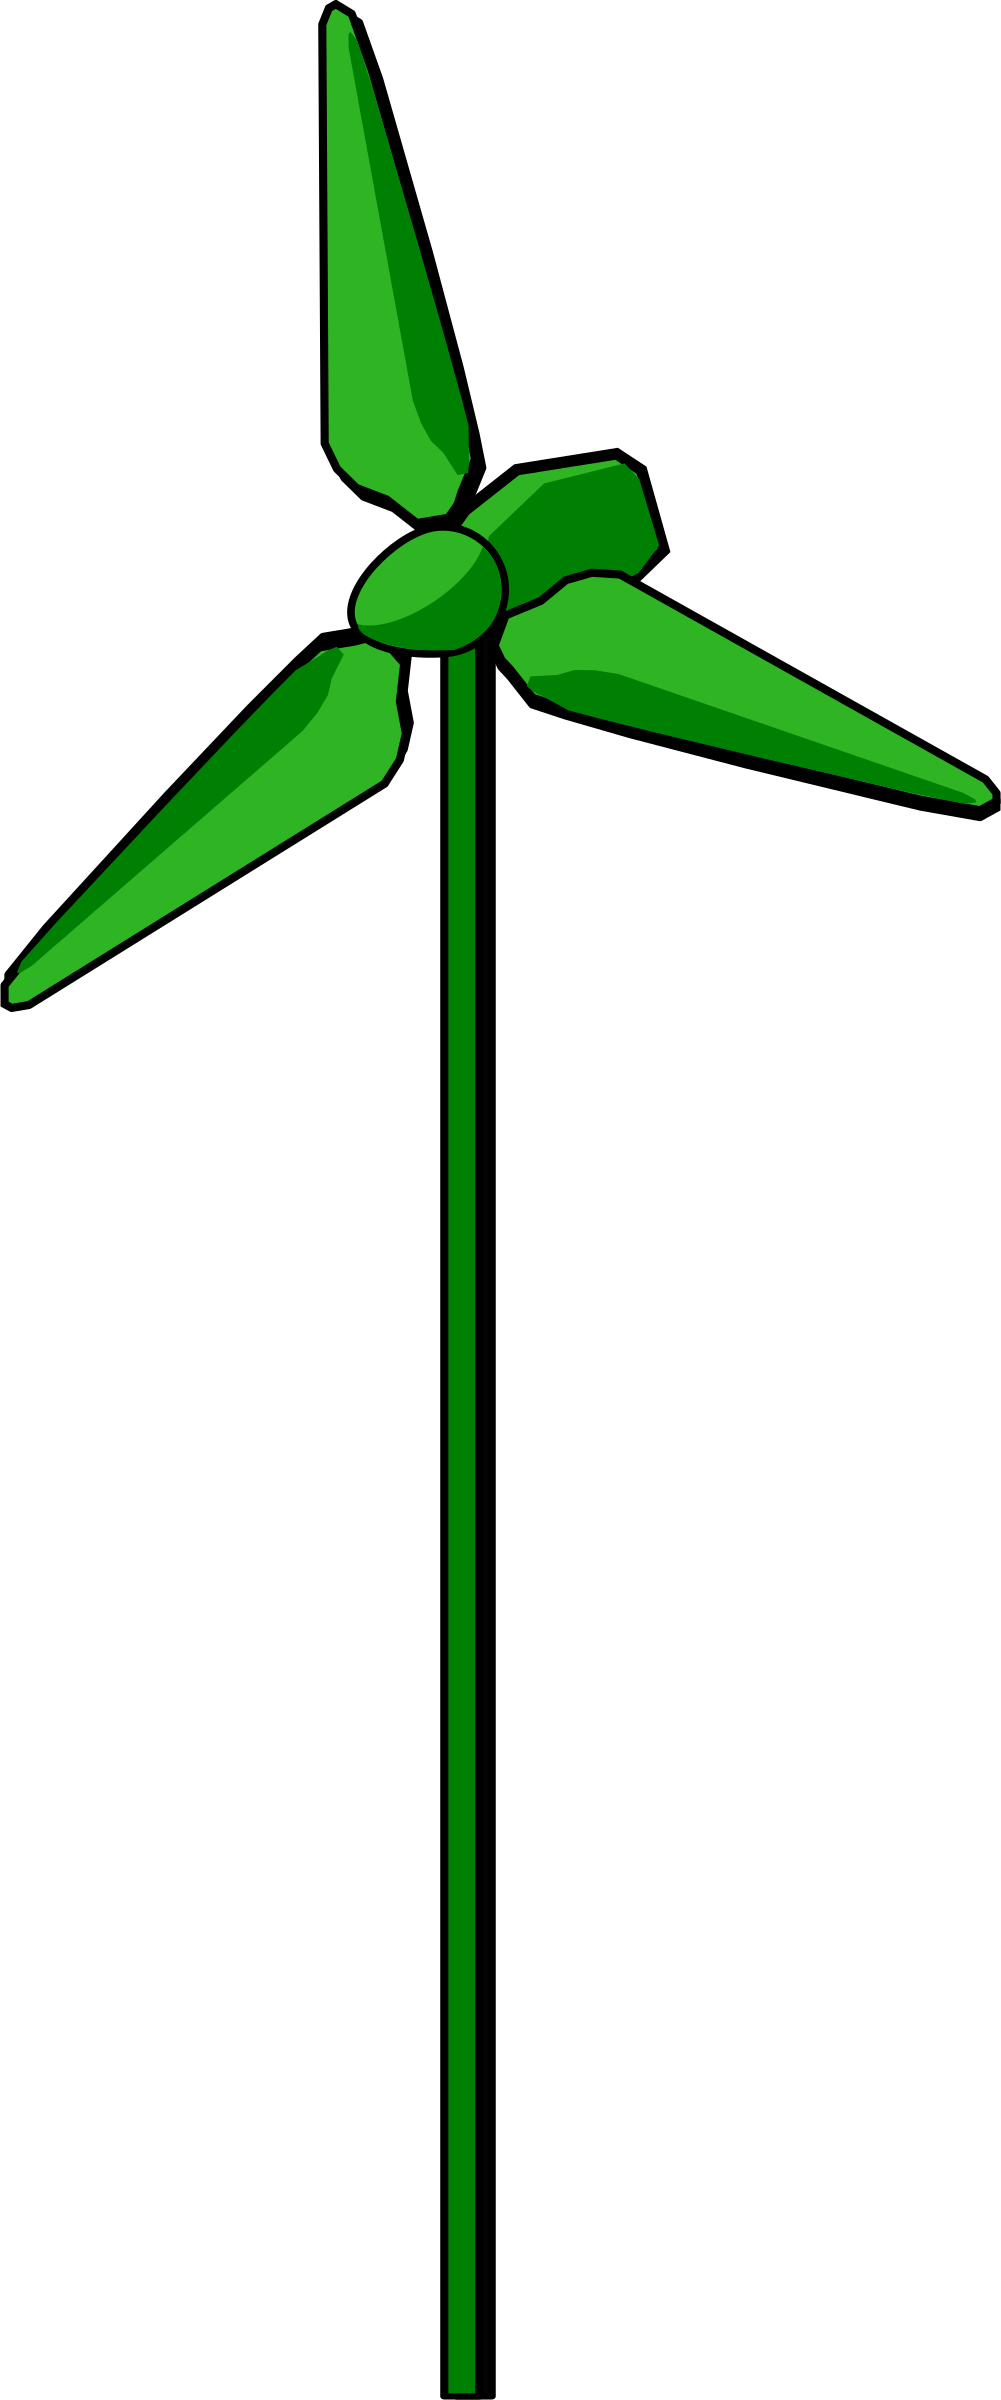 Positive clipart positive change. Wind turbine green big